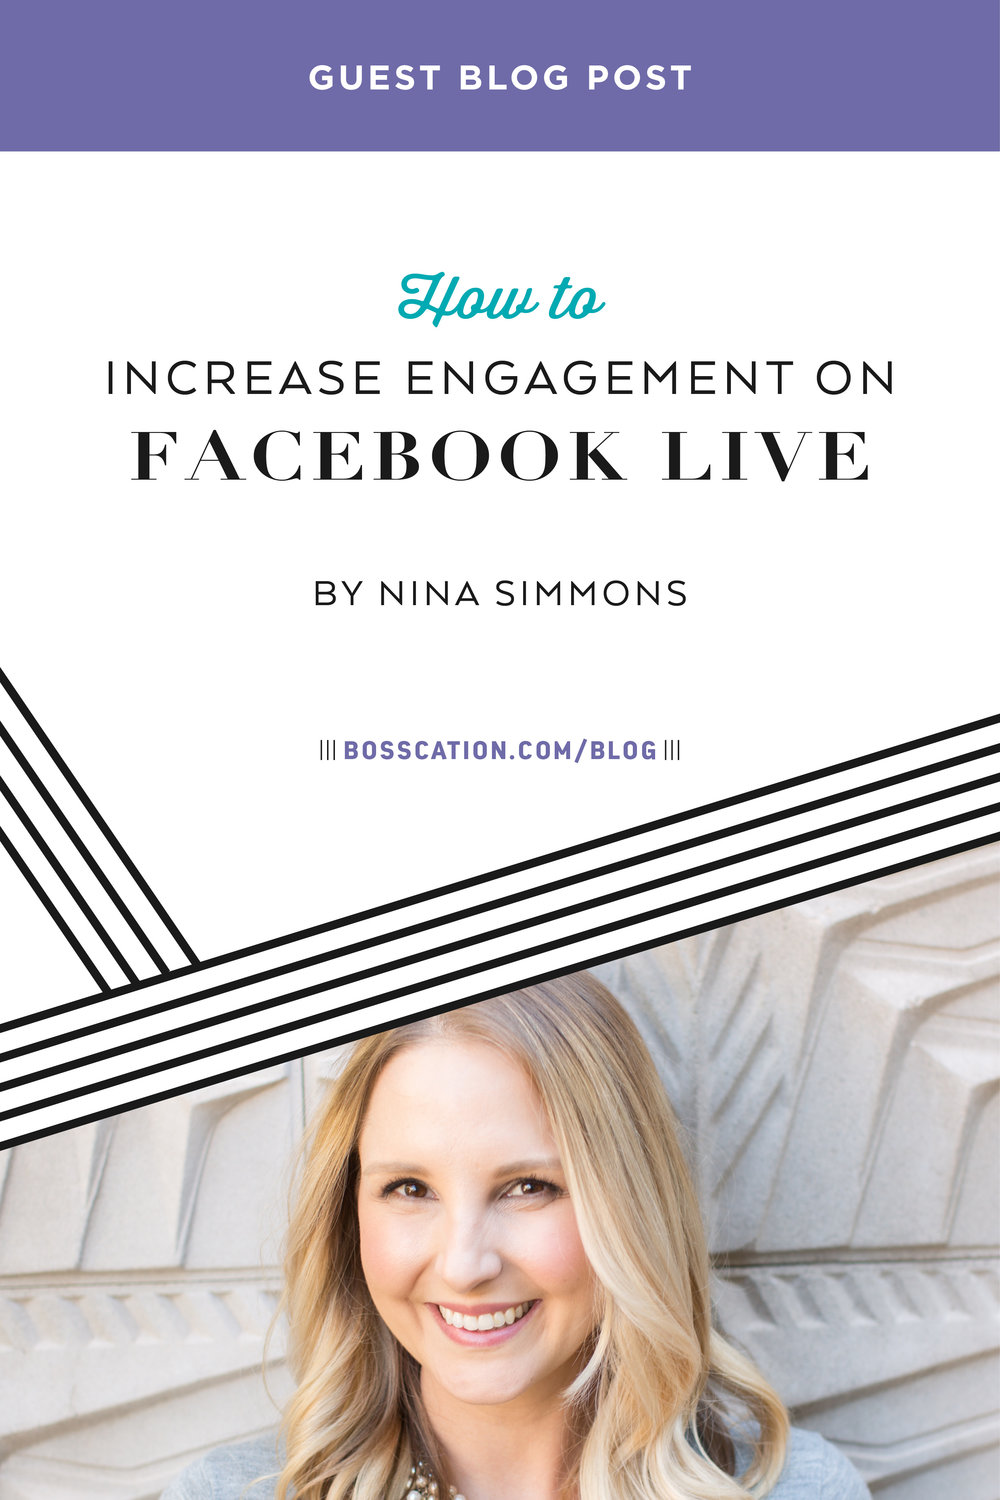 Increase-engagement-on-facebook-live-Pinterest.jpg